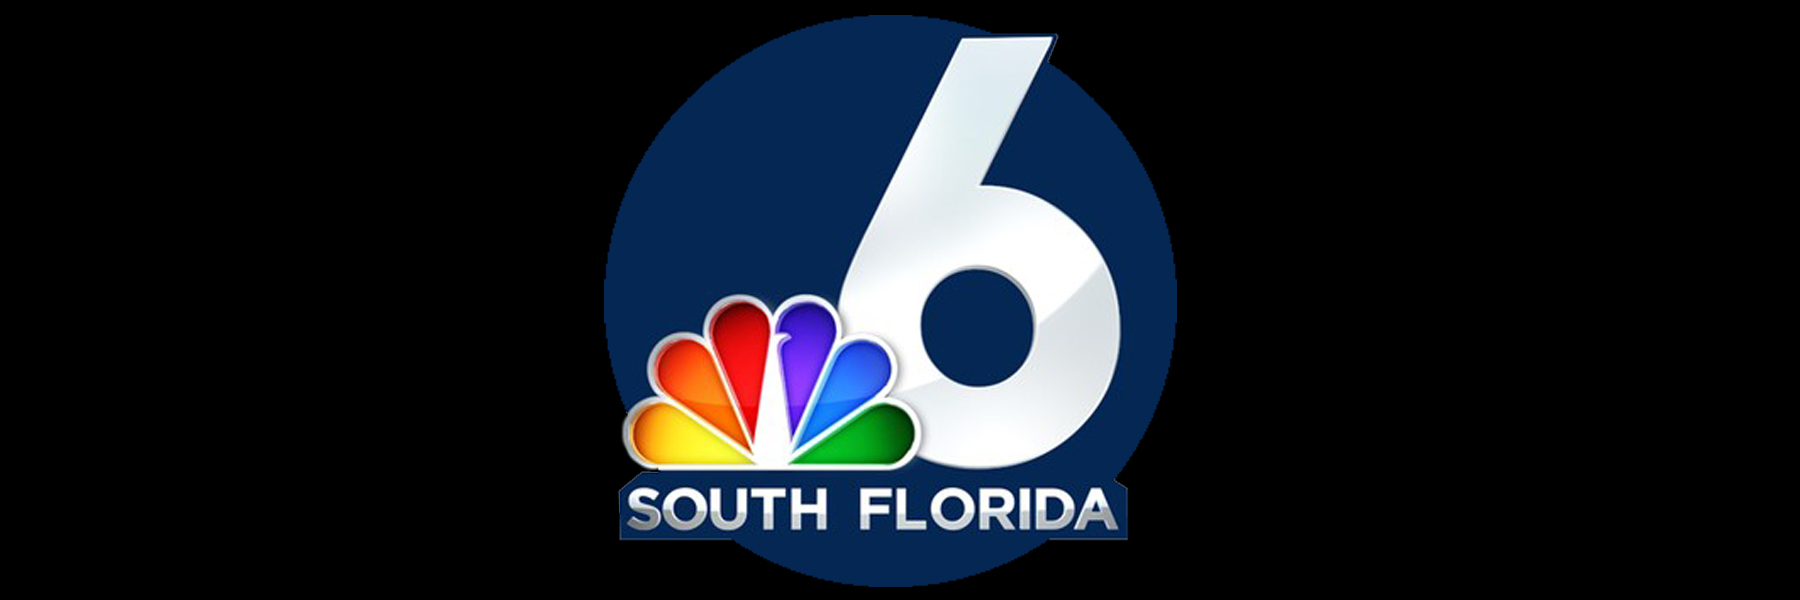 NBC 6 Button.jpg